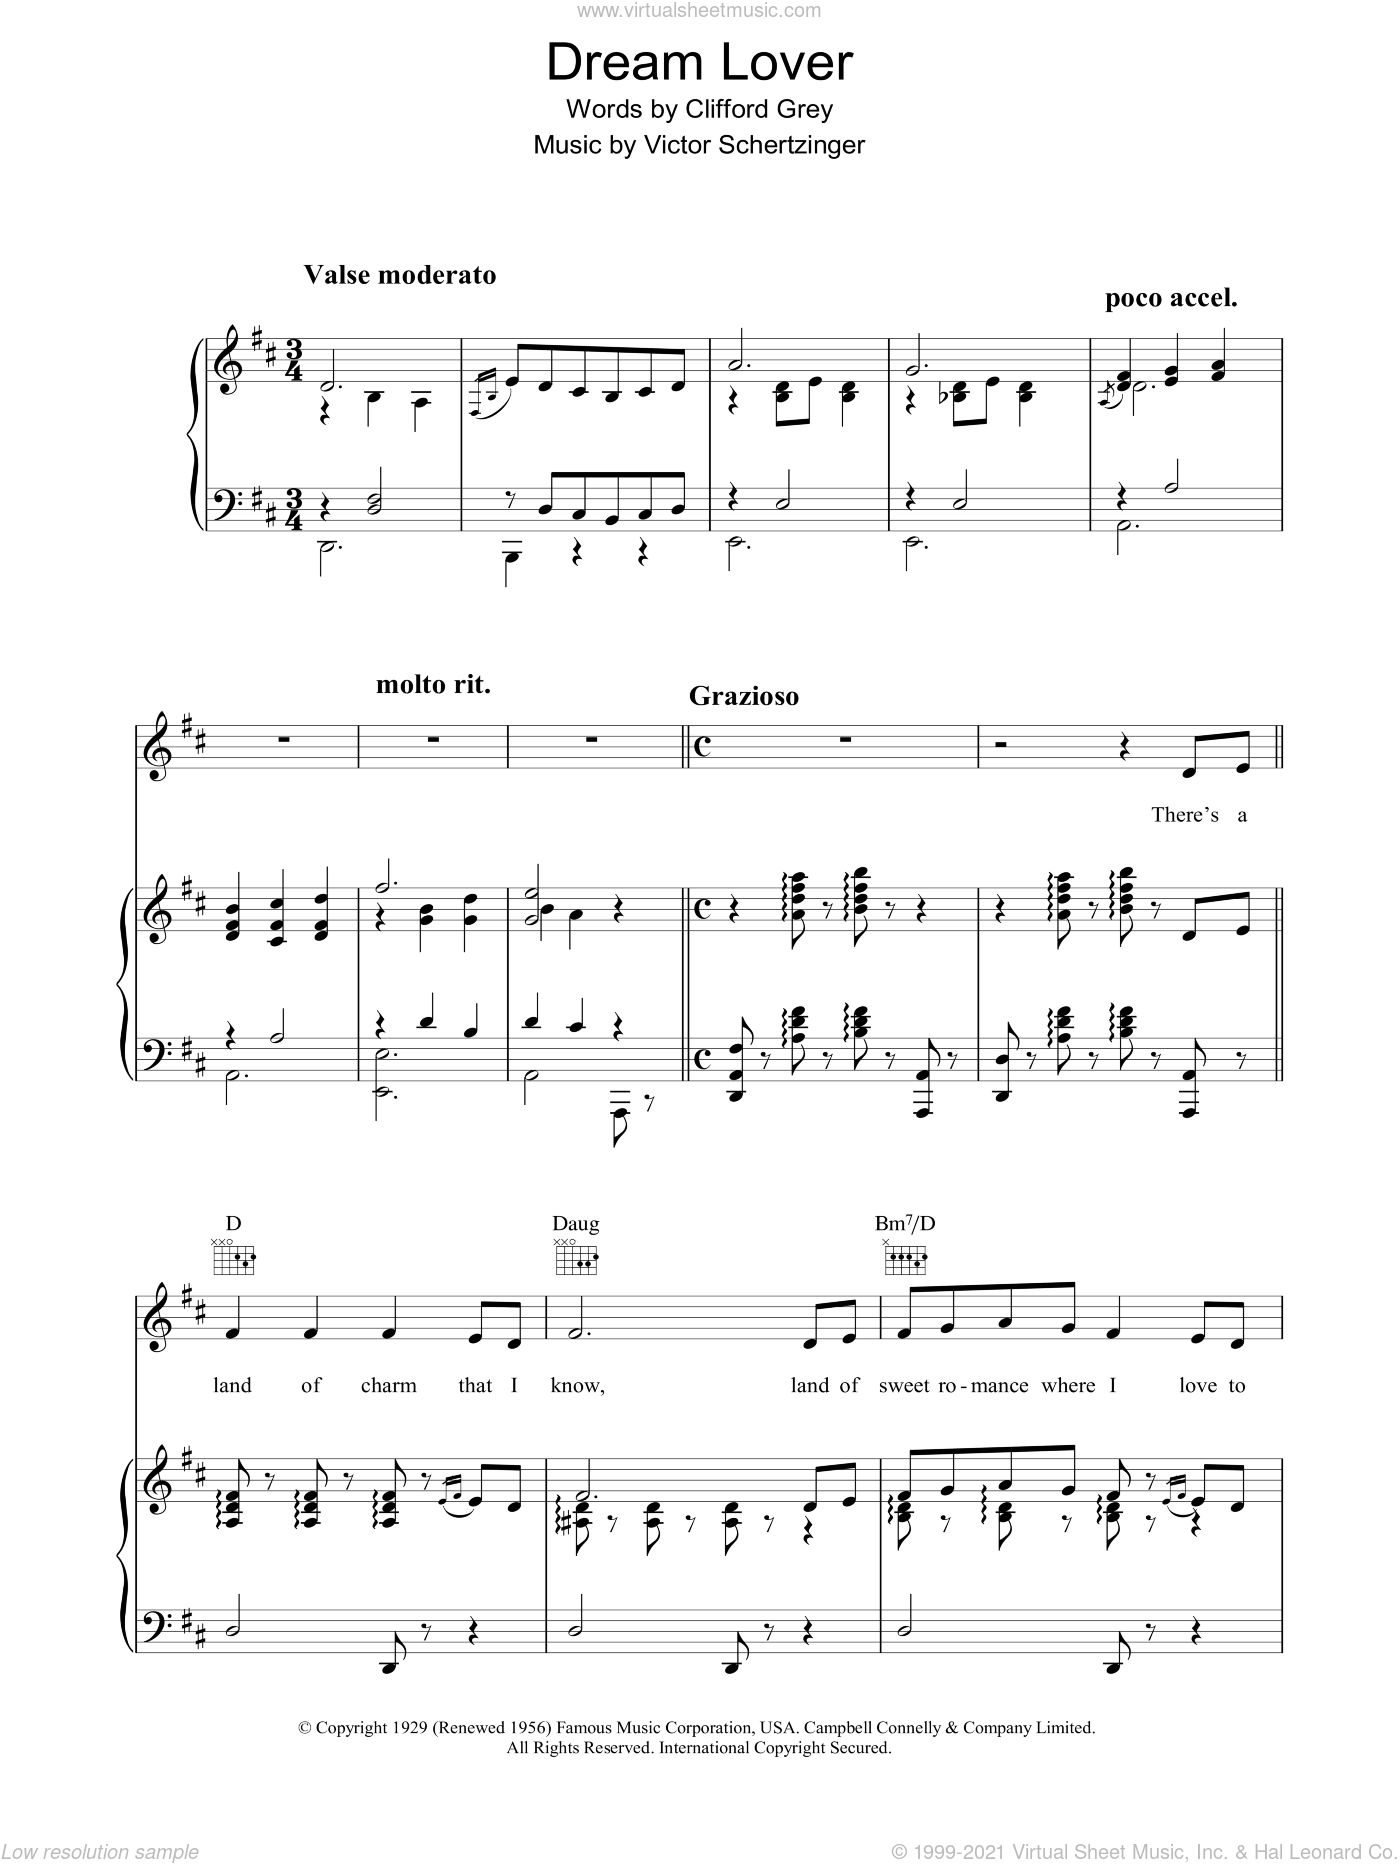 Dream Lover sheet music for voice, piano or guitar by Clifford Grey and Victor Schertzinger. Score Image Preview.